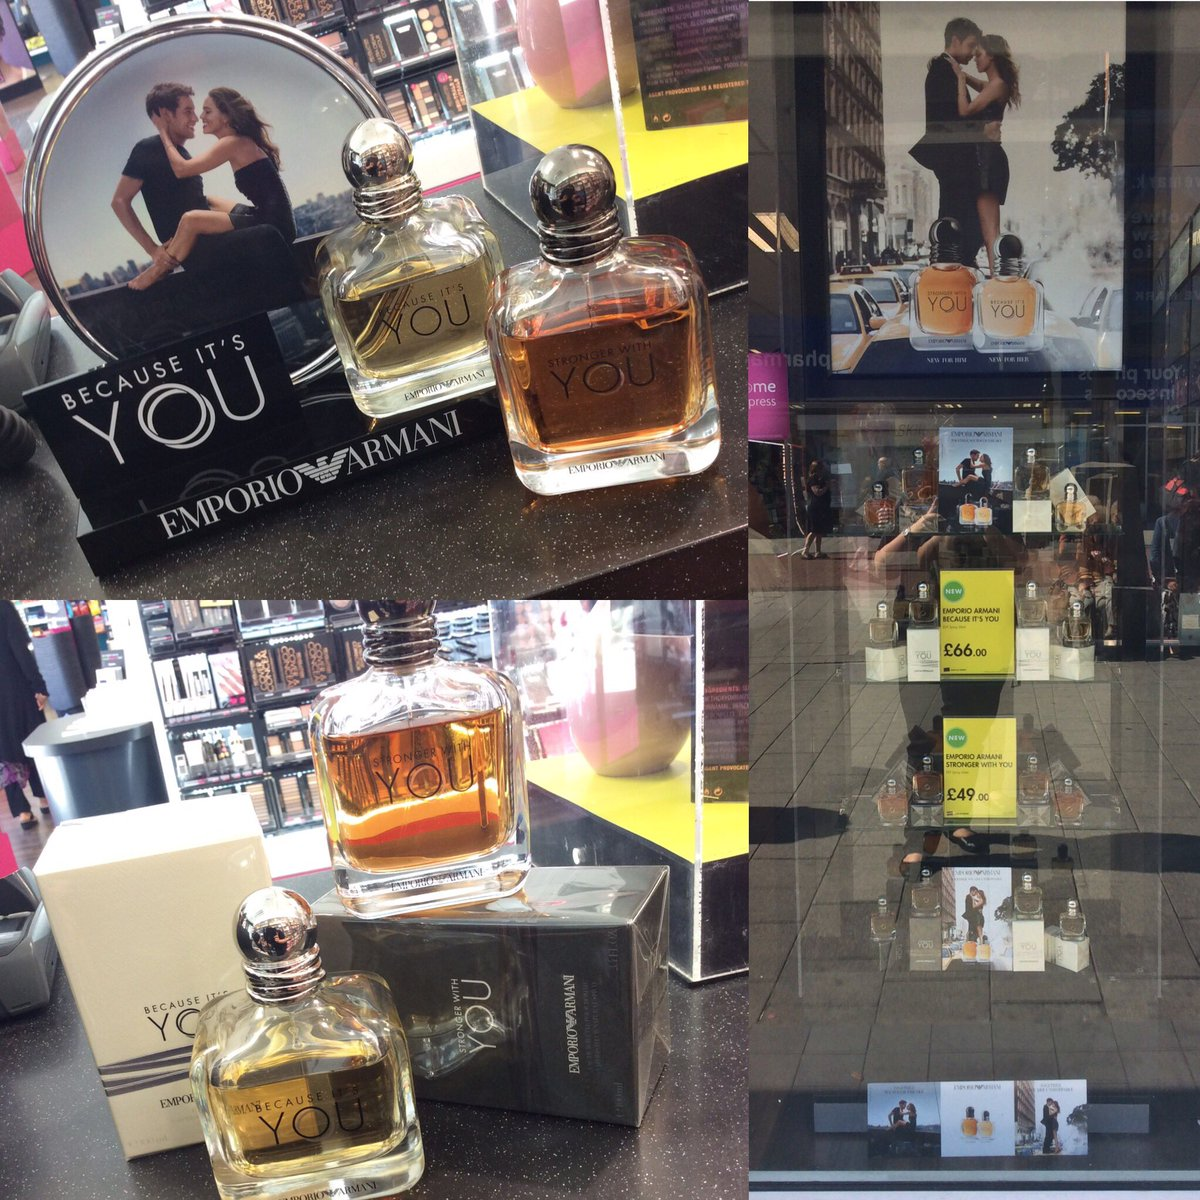 Walsall On The By Tps TwitterIntroducing Stunning New Fragrances 4cLqjAR53S